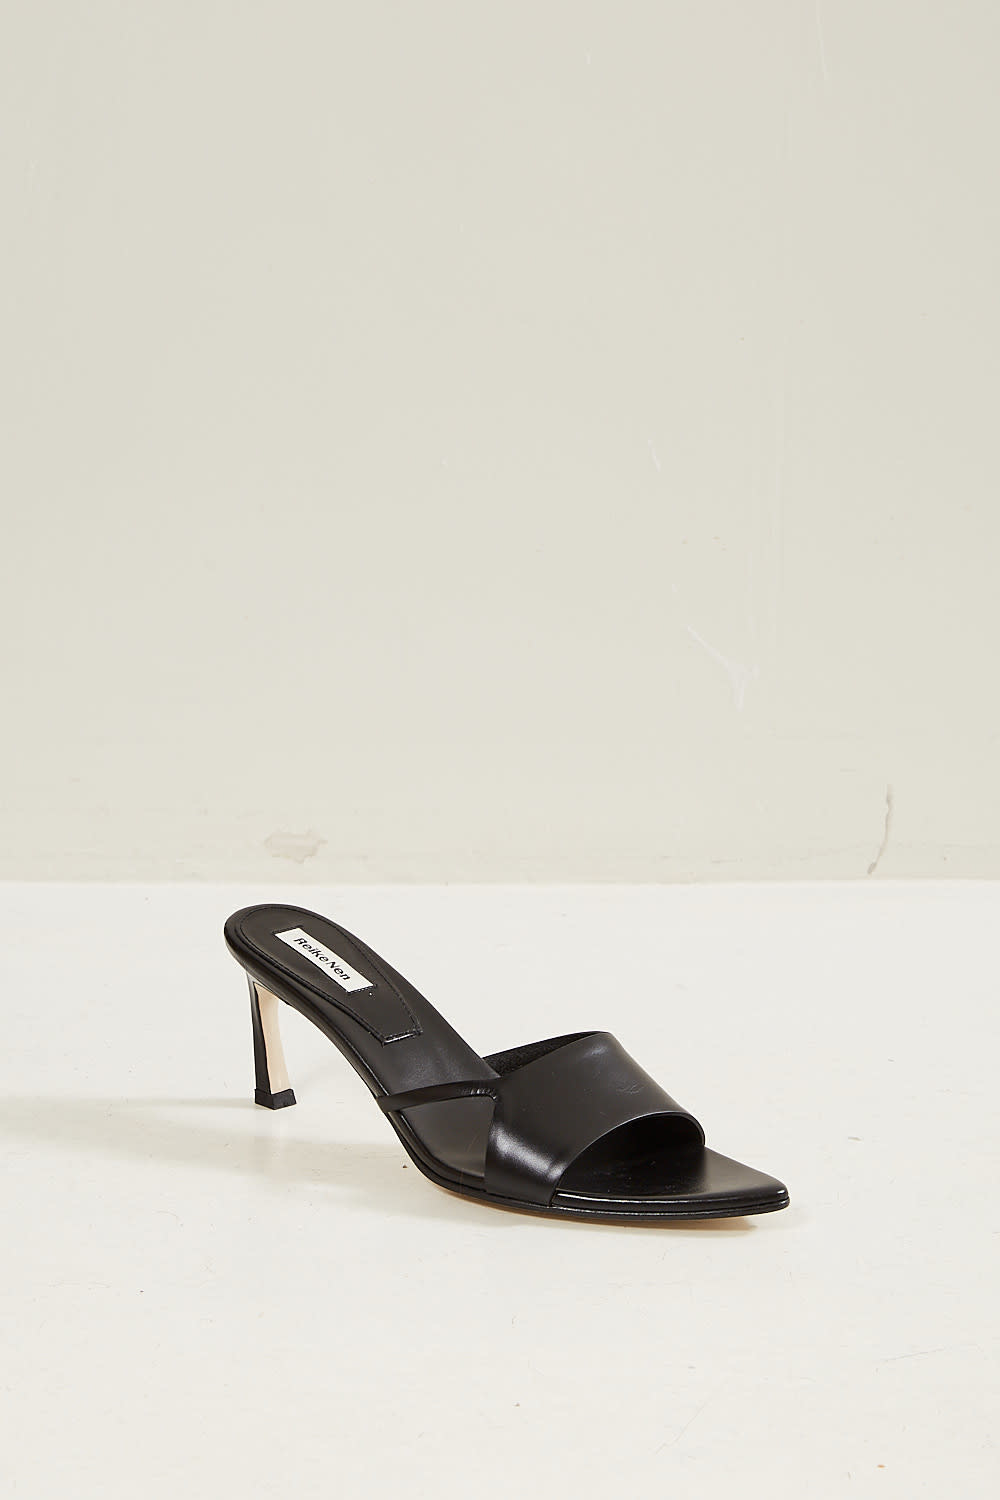 Reike Nen Cut out pointed sandals